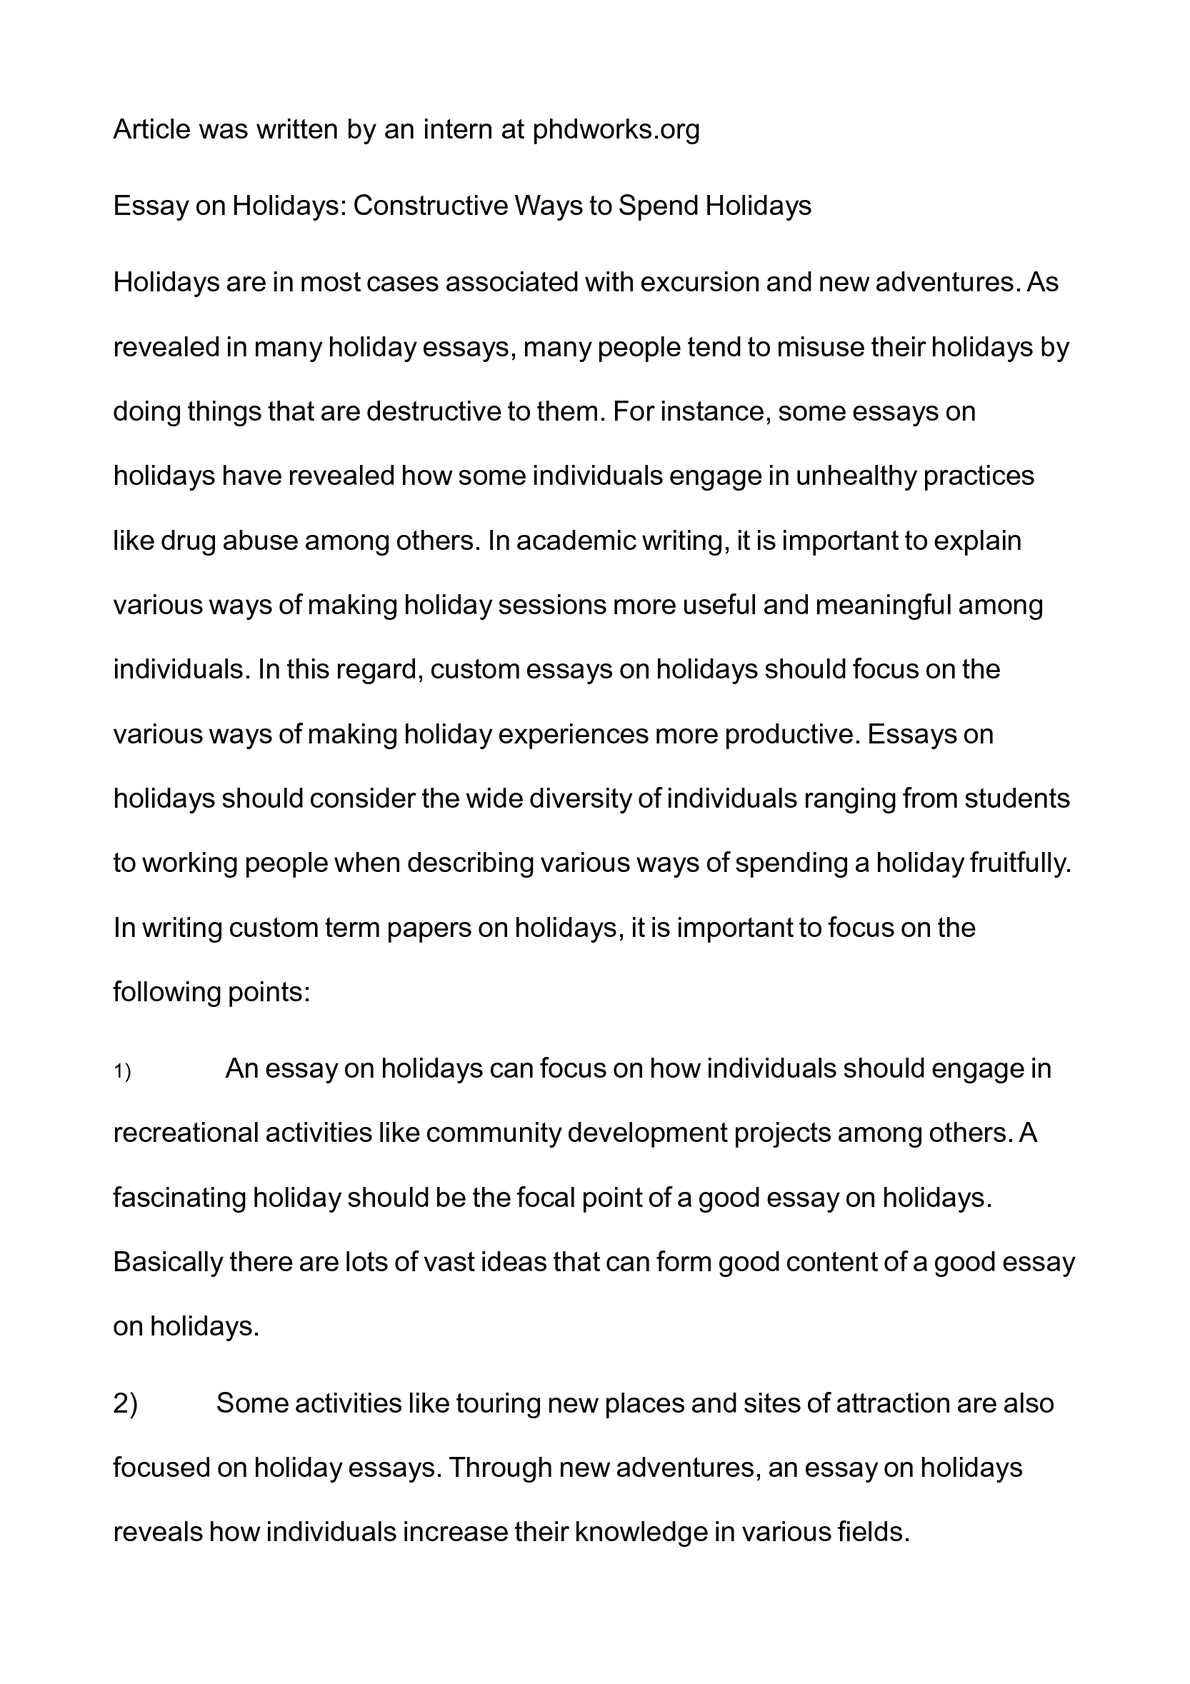 calameo essay on holidays constructive ways to spend holidays